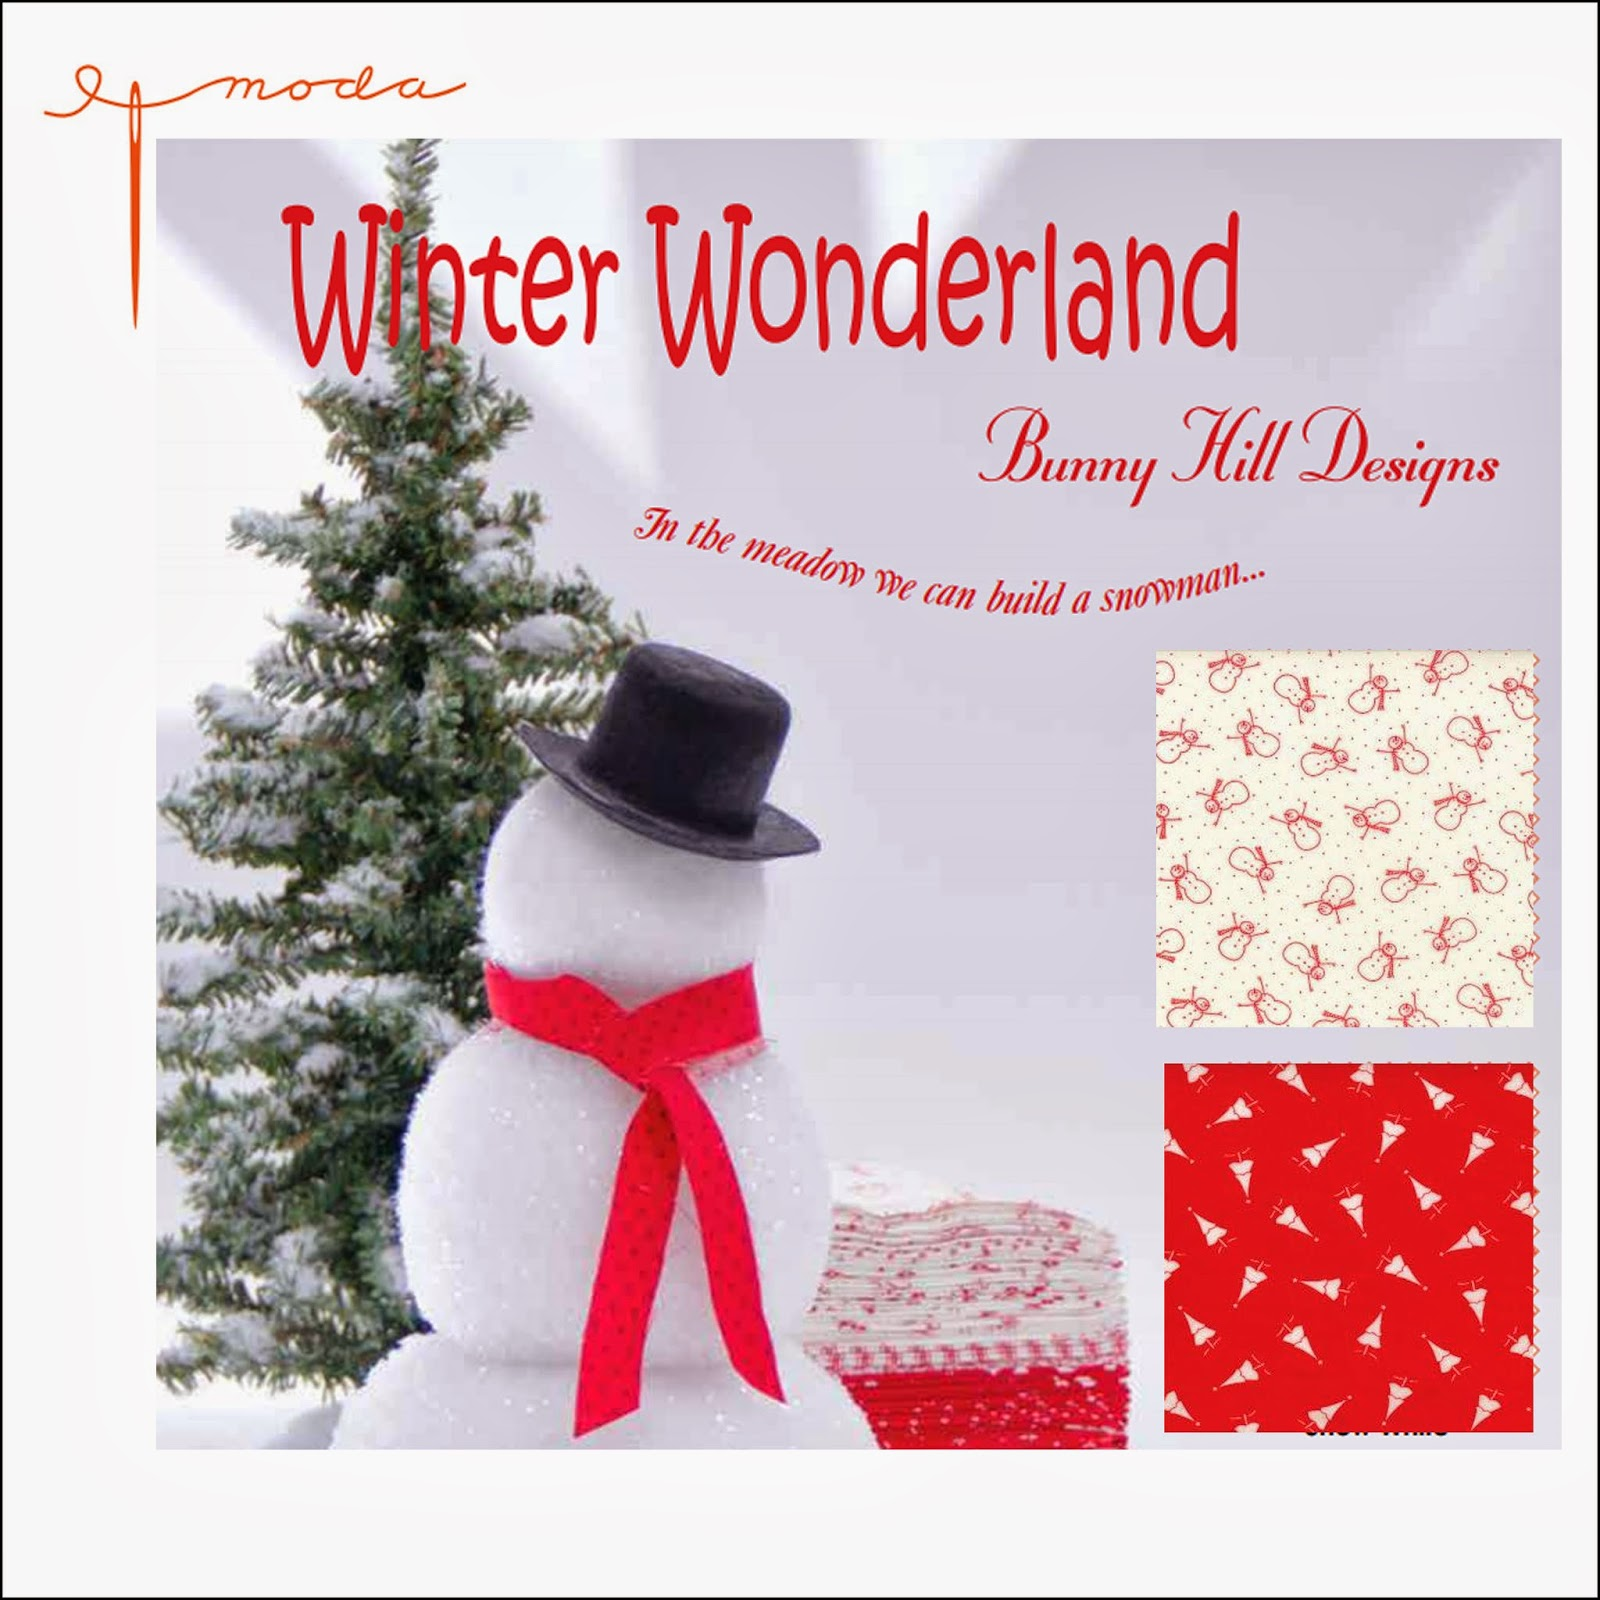 Moda WINTER WONDERLAND Quilt Fabric by Anne Sutton of Bunny Hill Designs for Moda Fabrics